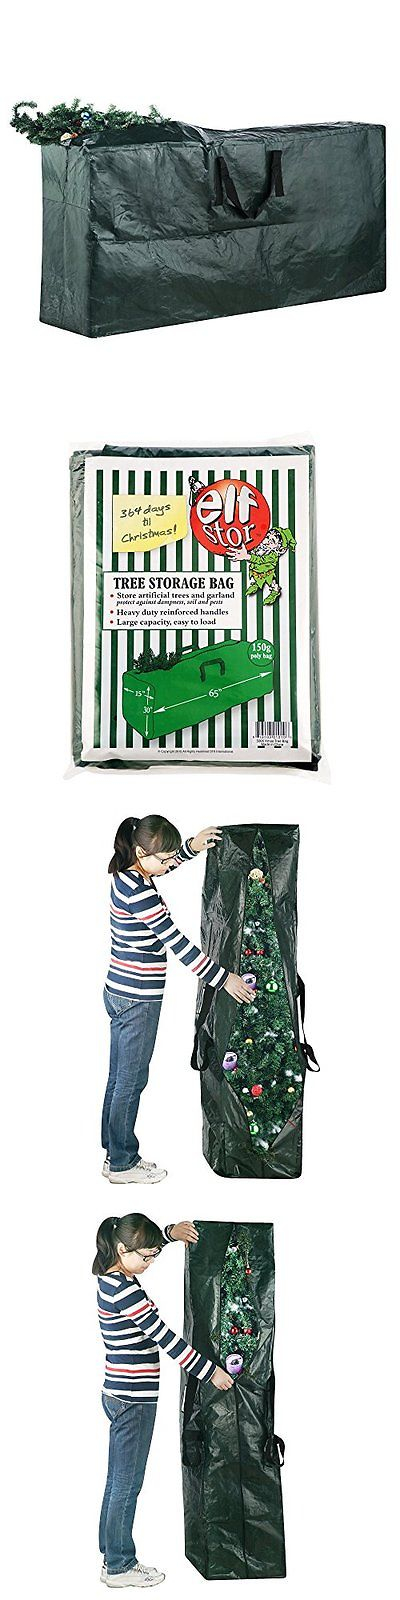 Tree Stands Skirts and Storage 166726 Artificial Christmas Tree